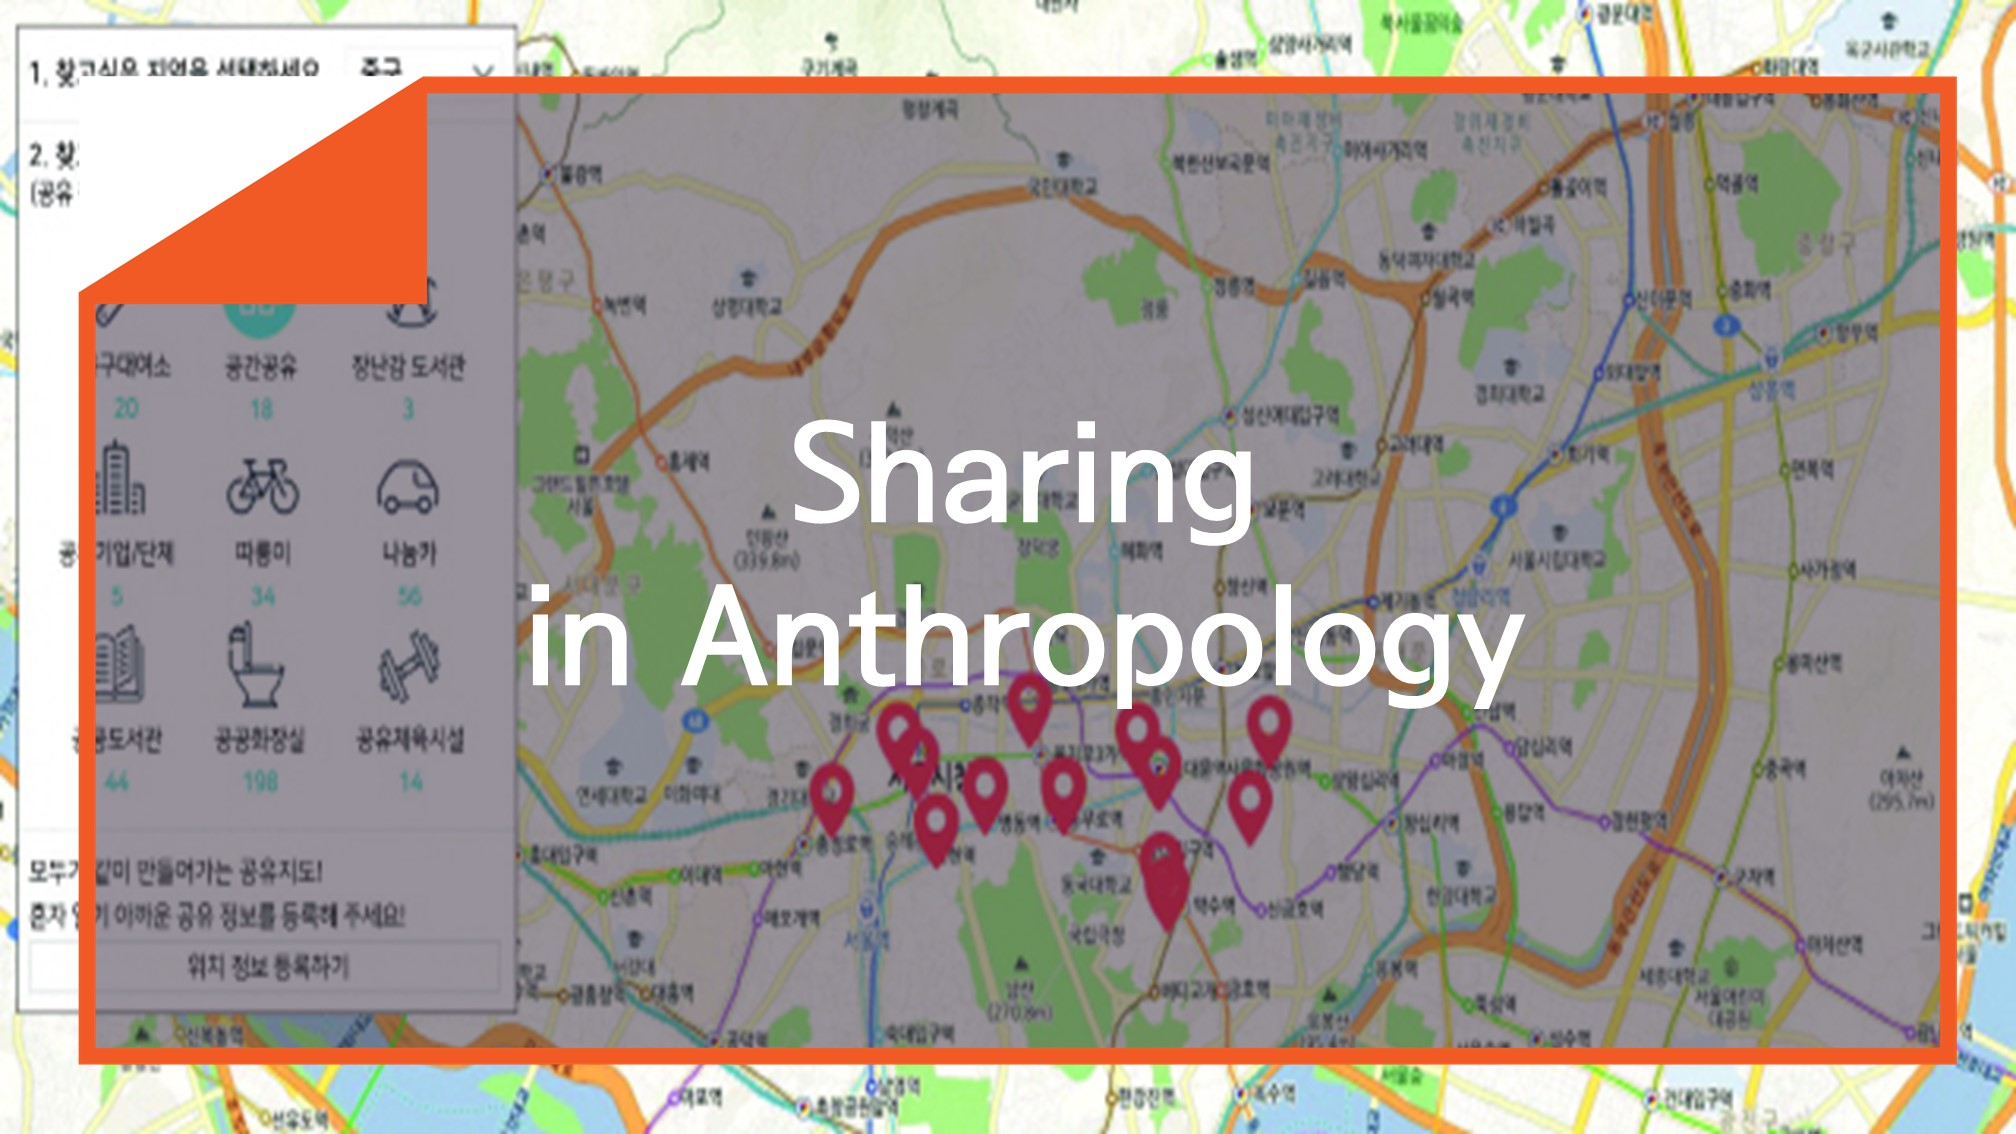 [Resources] Sharing in Anthropology